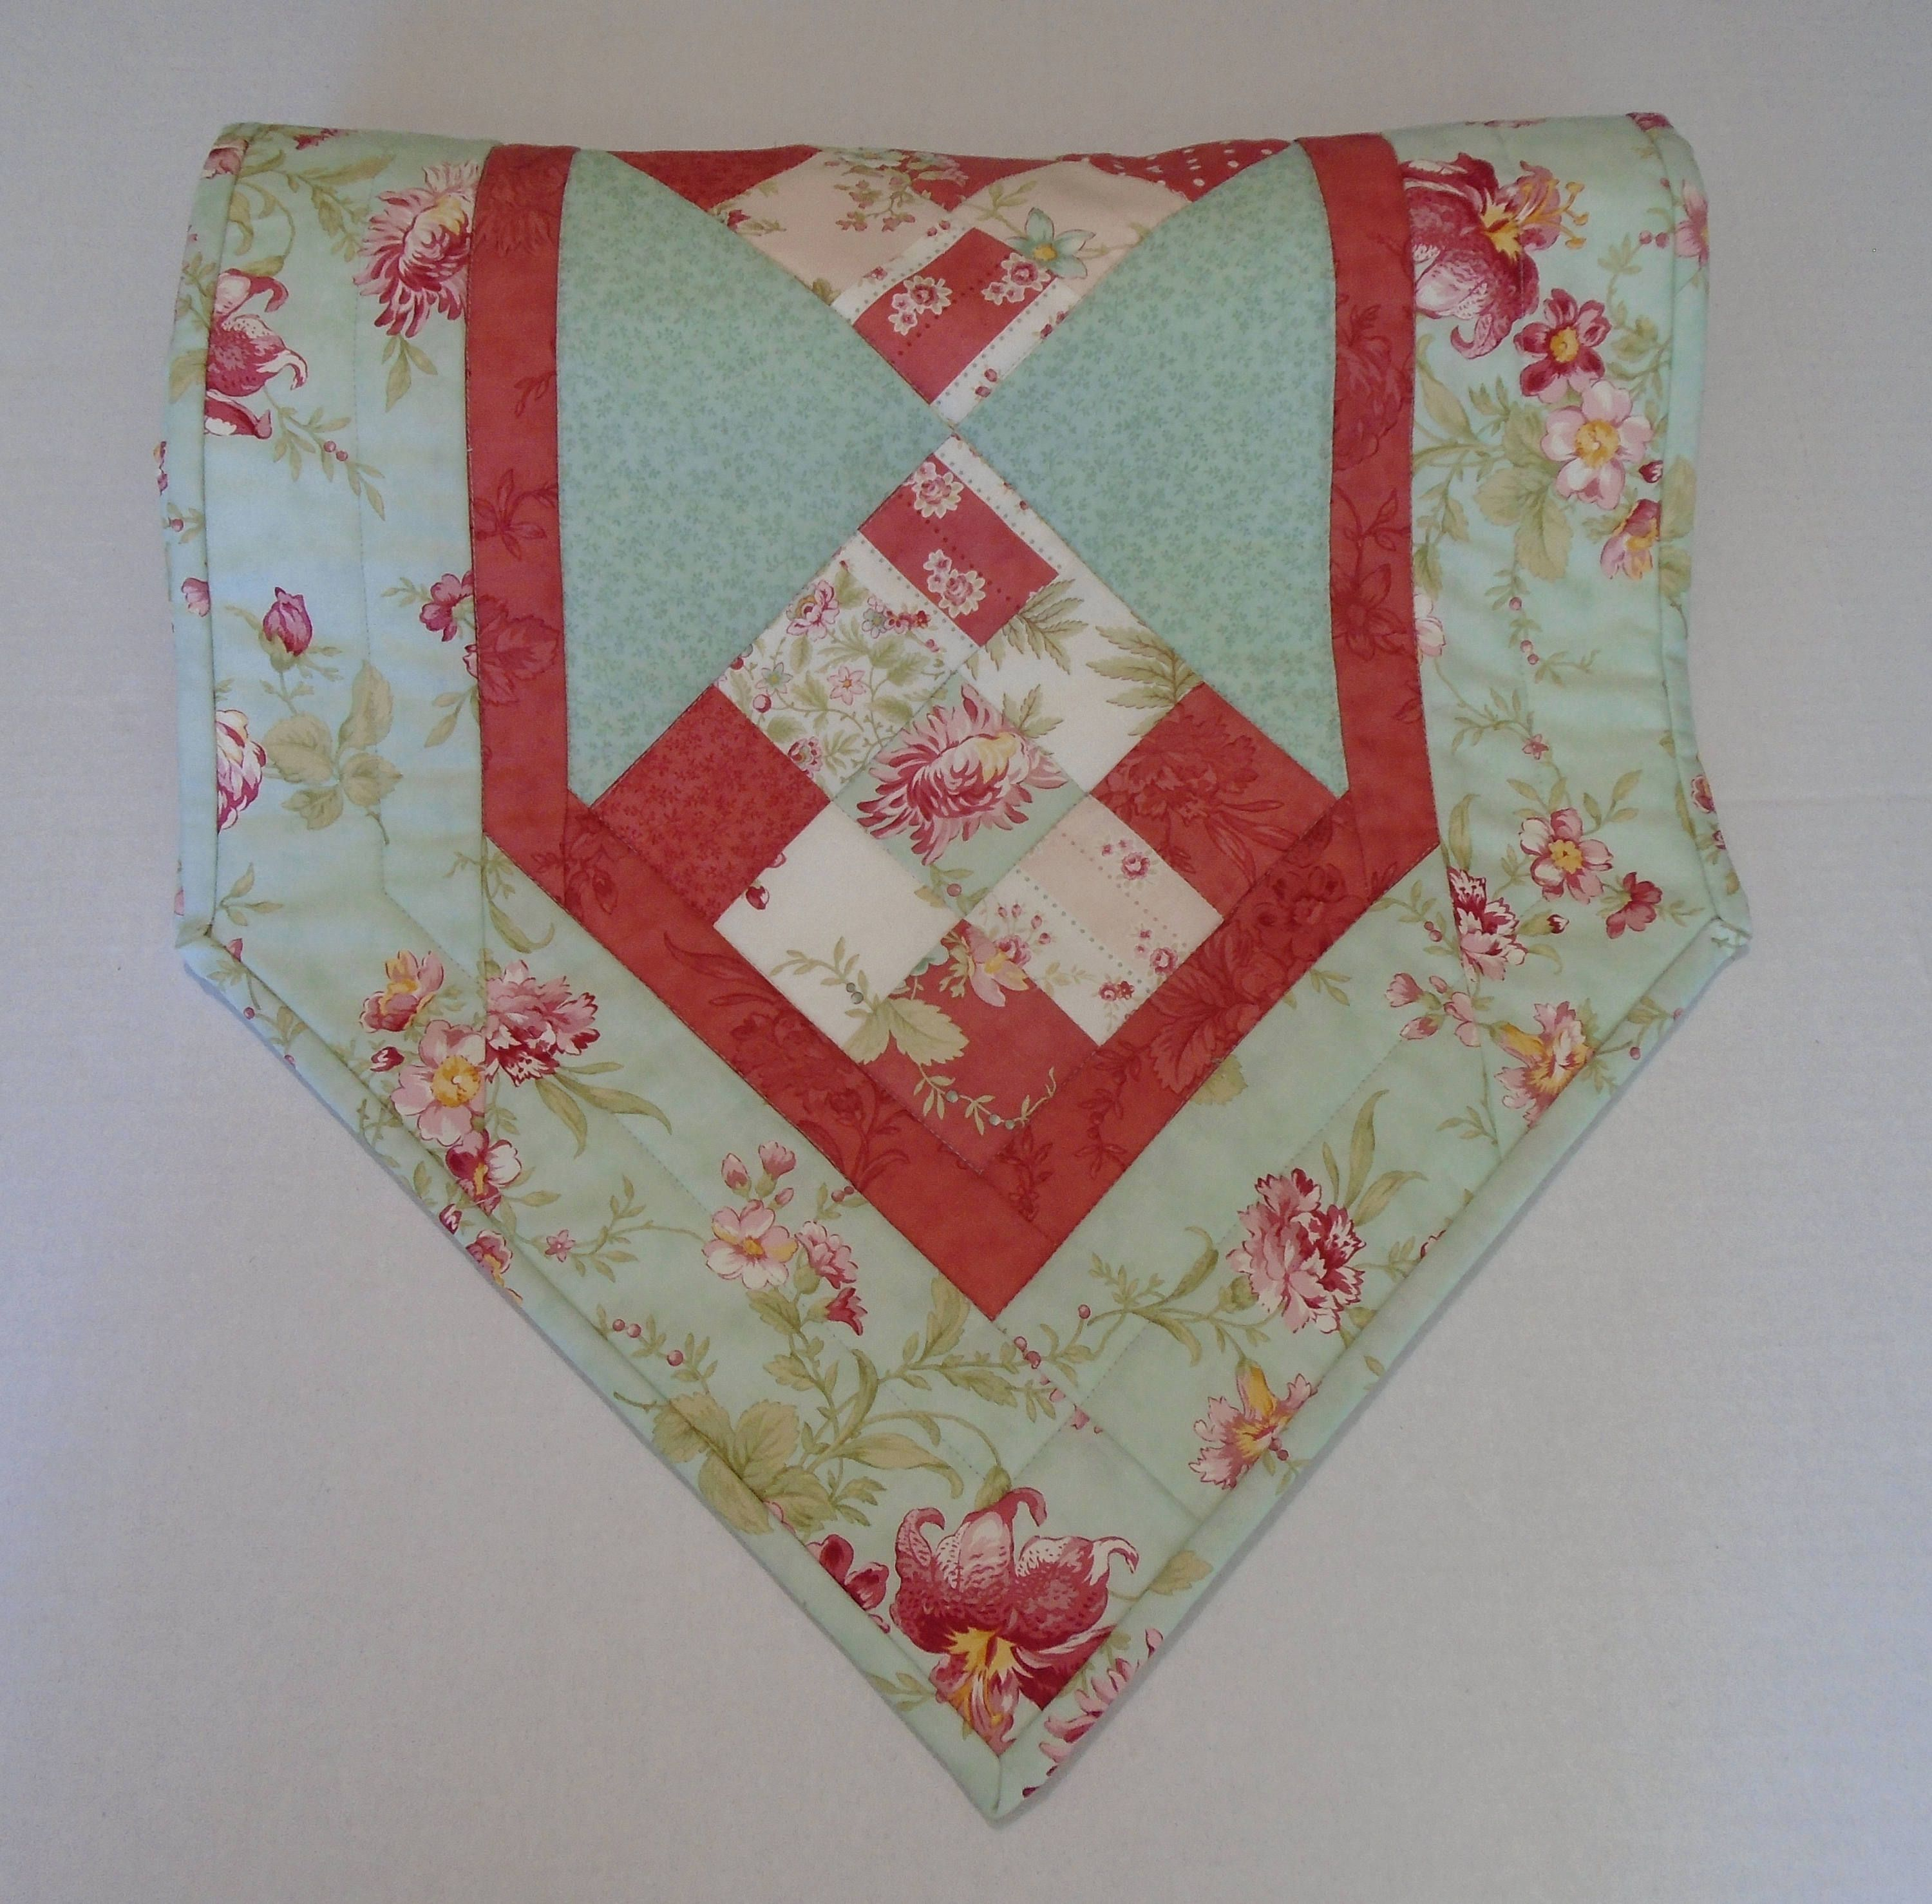 Fl Quilted Table Runner In Aqua And Rose Topper Roses Flowers Dresser Scarf Patchwork Quilt